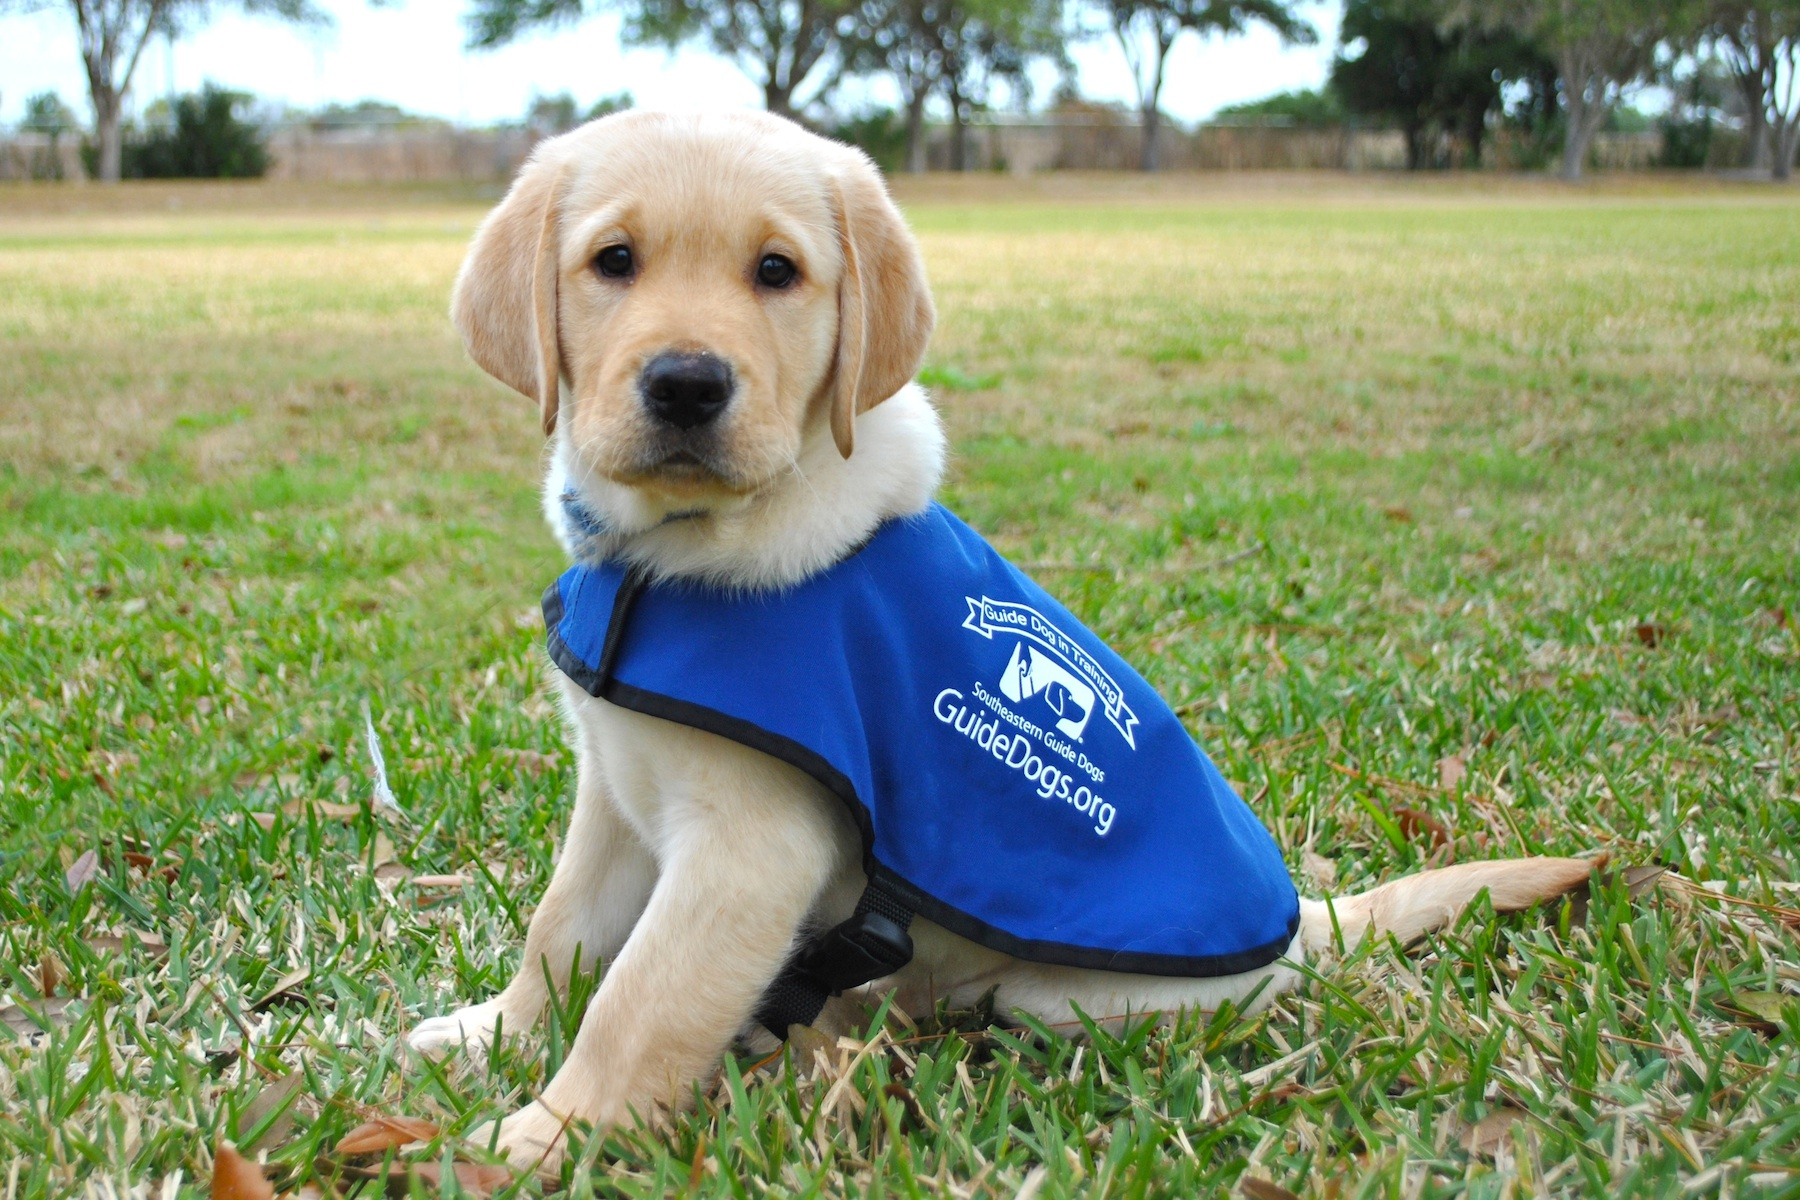 Puppies Hug Em In Florida At Southeastern Guide Dogs